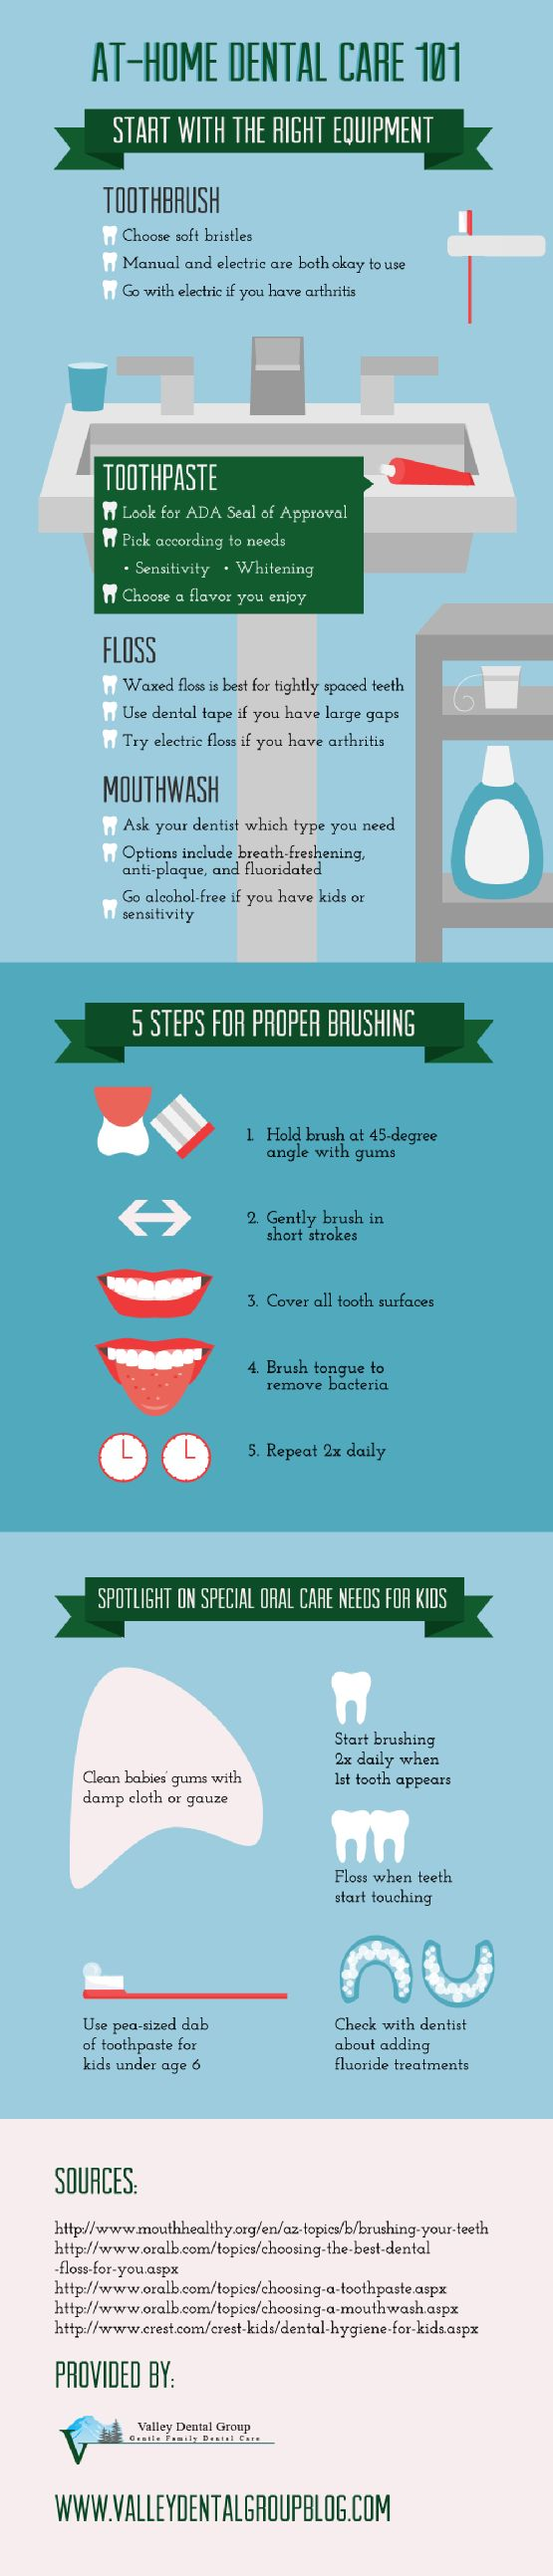 Brushing new toothbrush claims to clean teeth in 6 seconds abc news - Are You Brushing Your Teeth Correctly Start By Hold The Brush At A 45